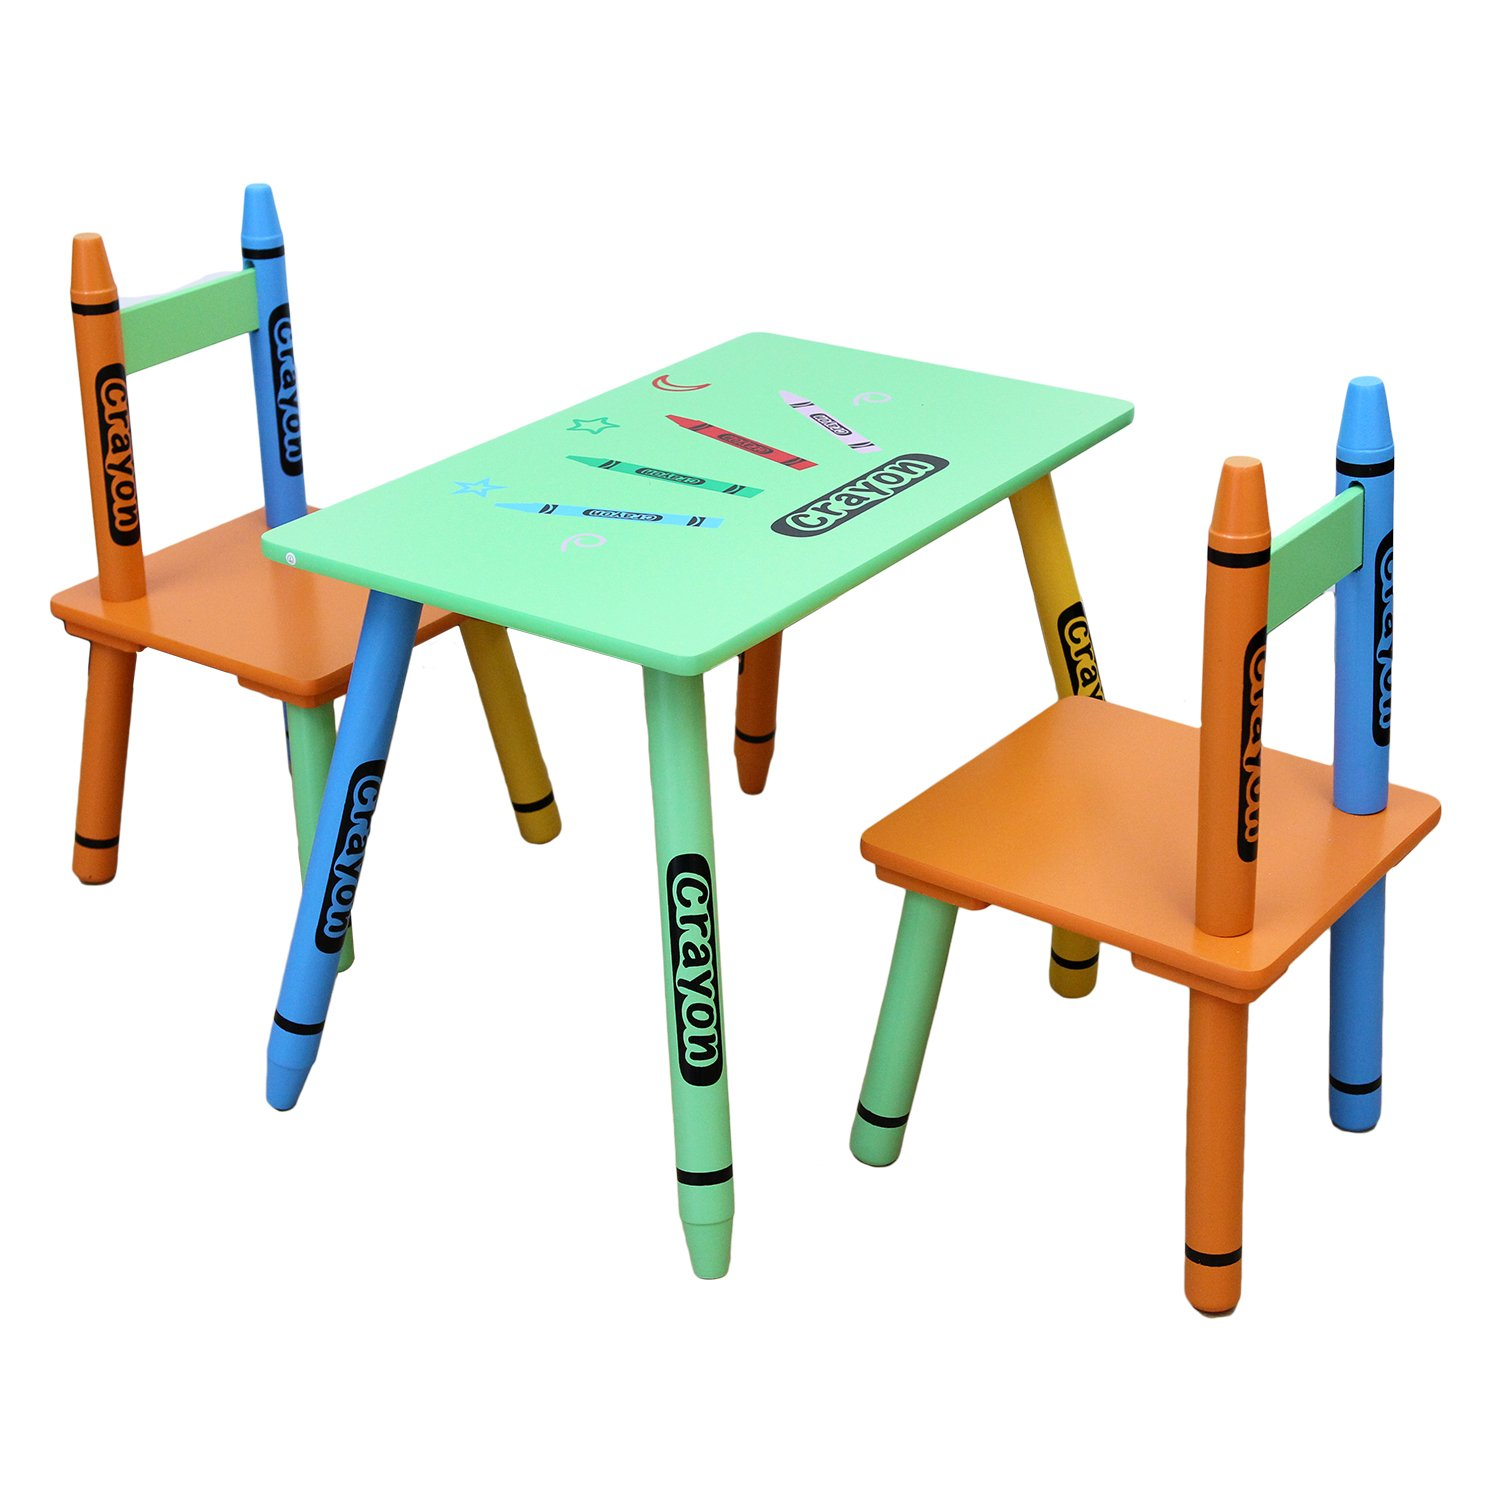 Bebe Style Childrens Wooden Table and Chair Set Green Amazon